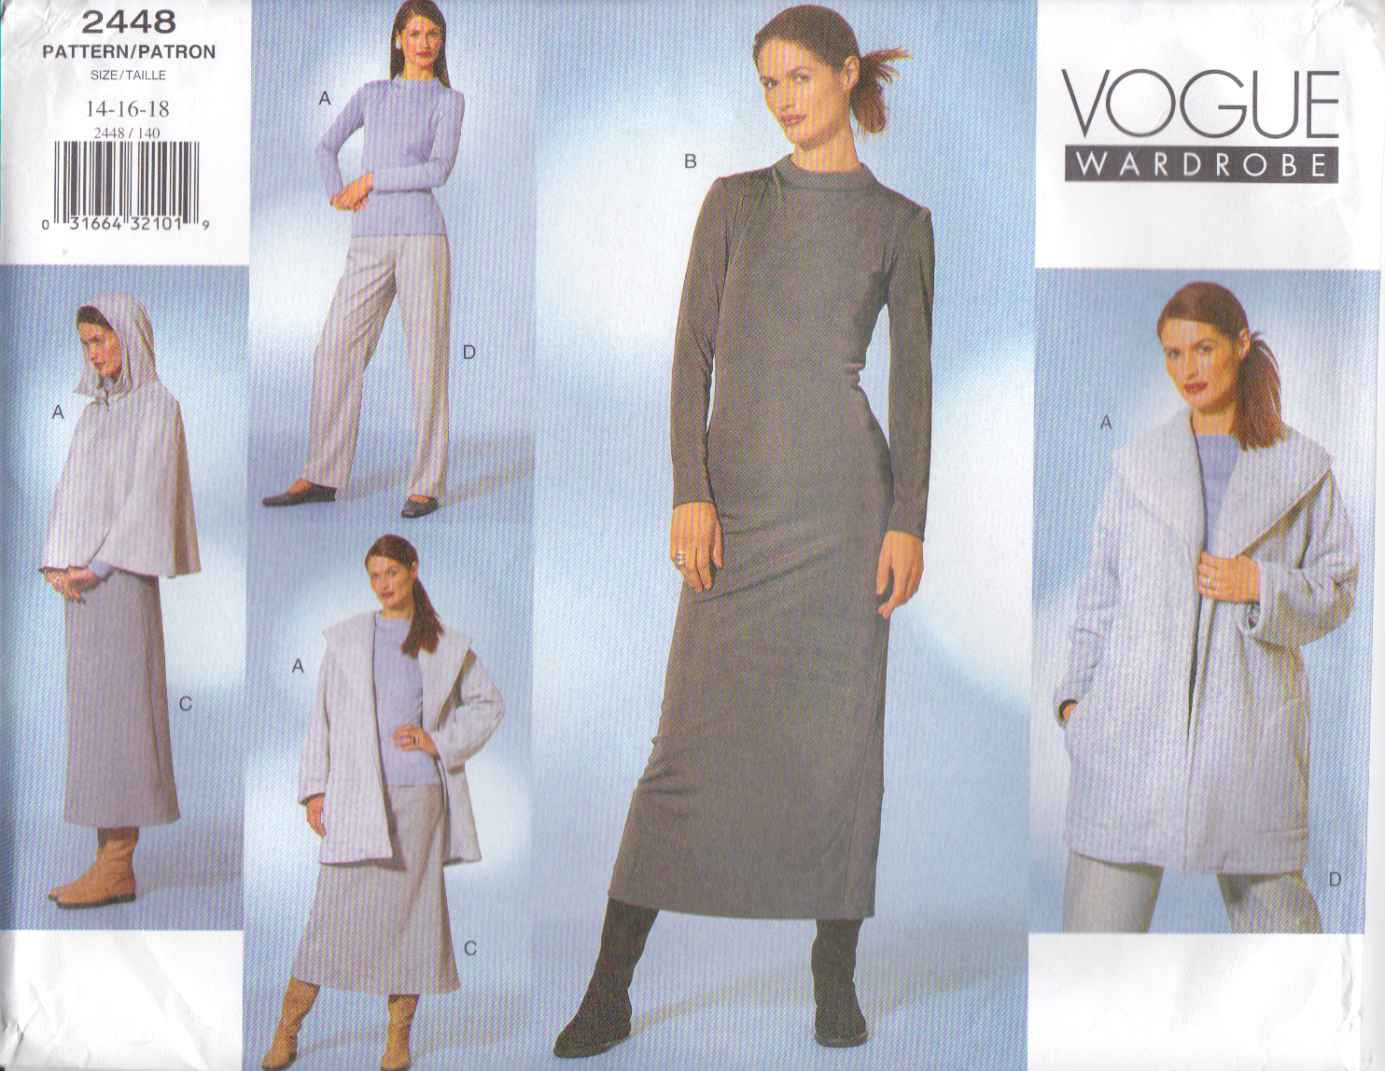 Vogue Sewing Pattern 2448 Misses Size 8-10-12 Easy Wardrobe Jacket Cape Dress Pants Top Skirt